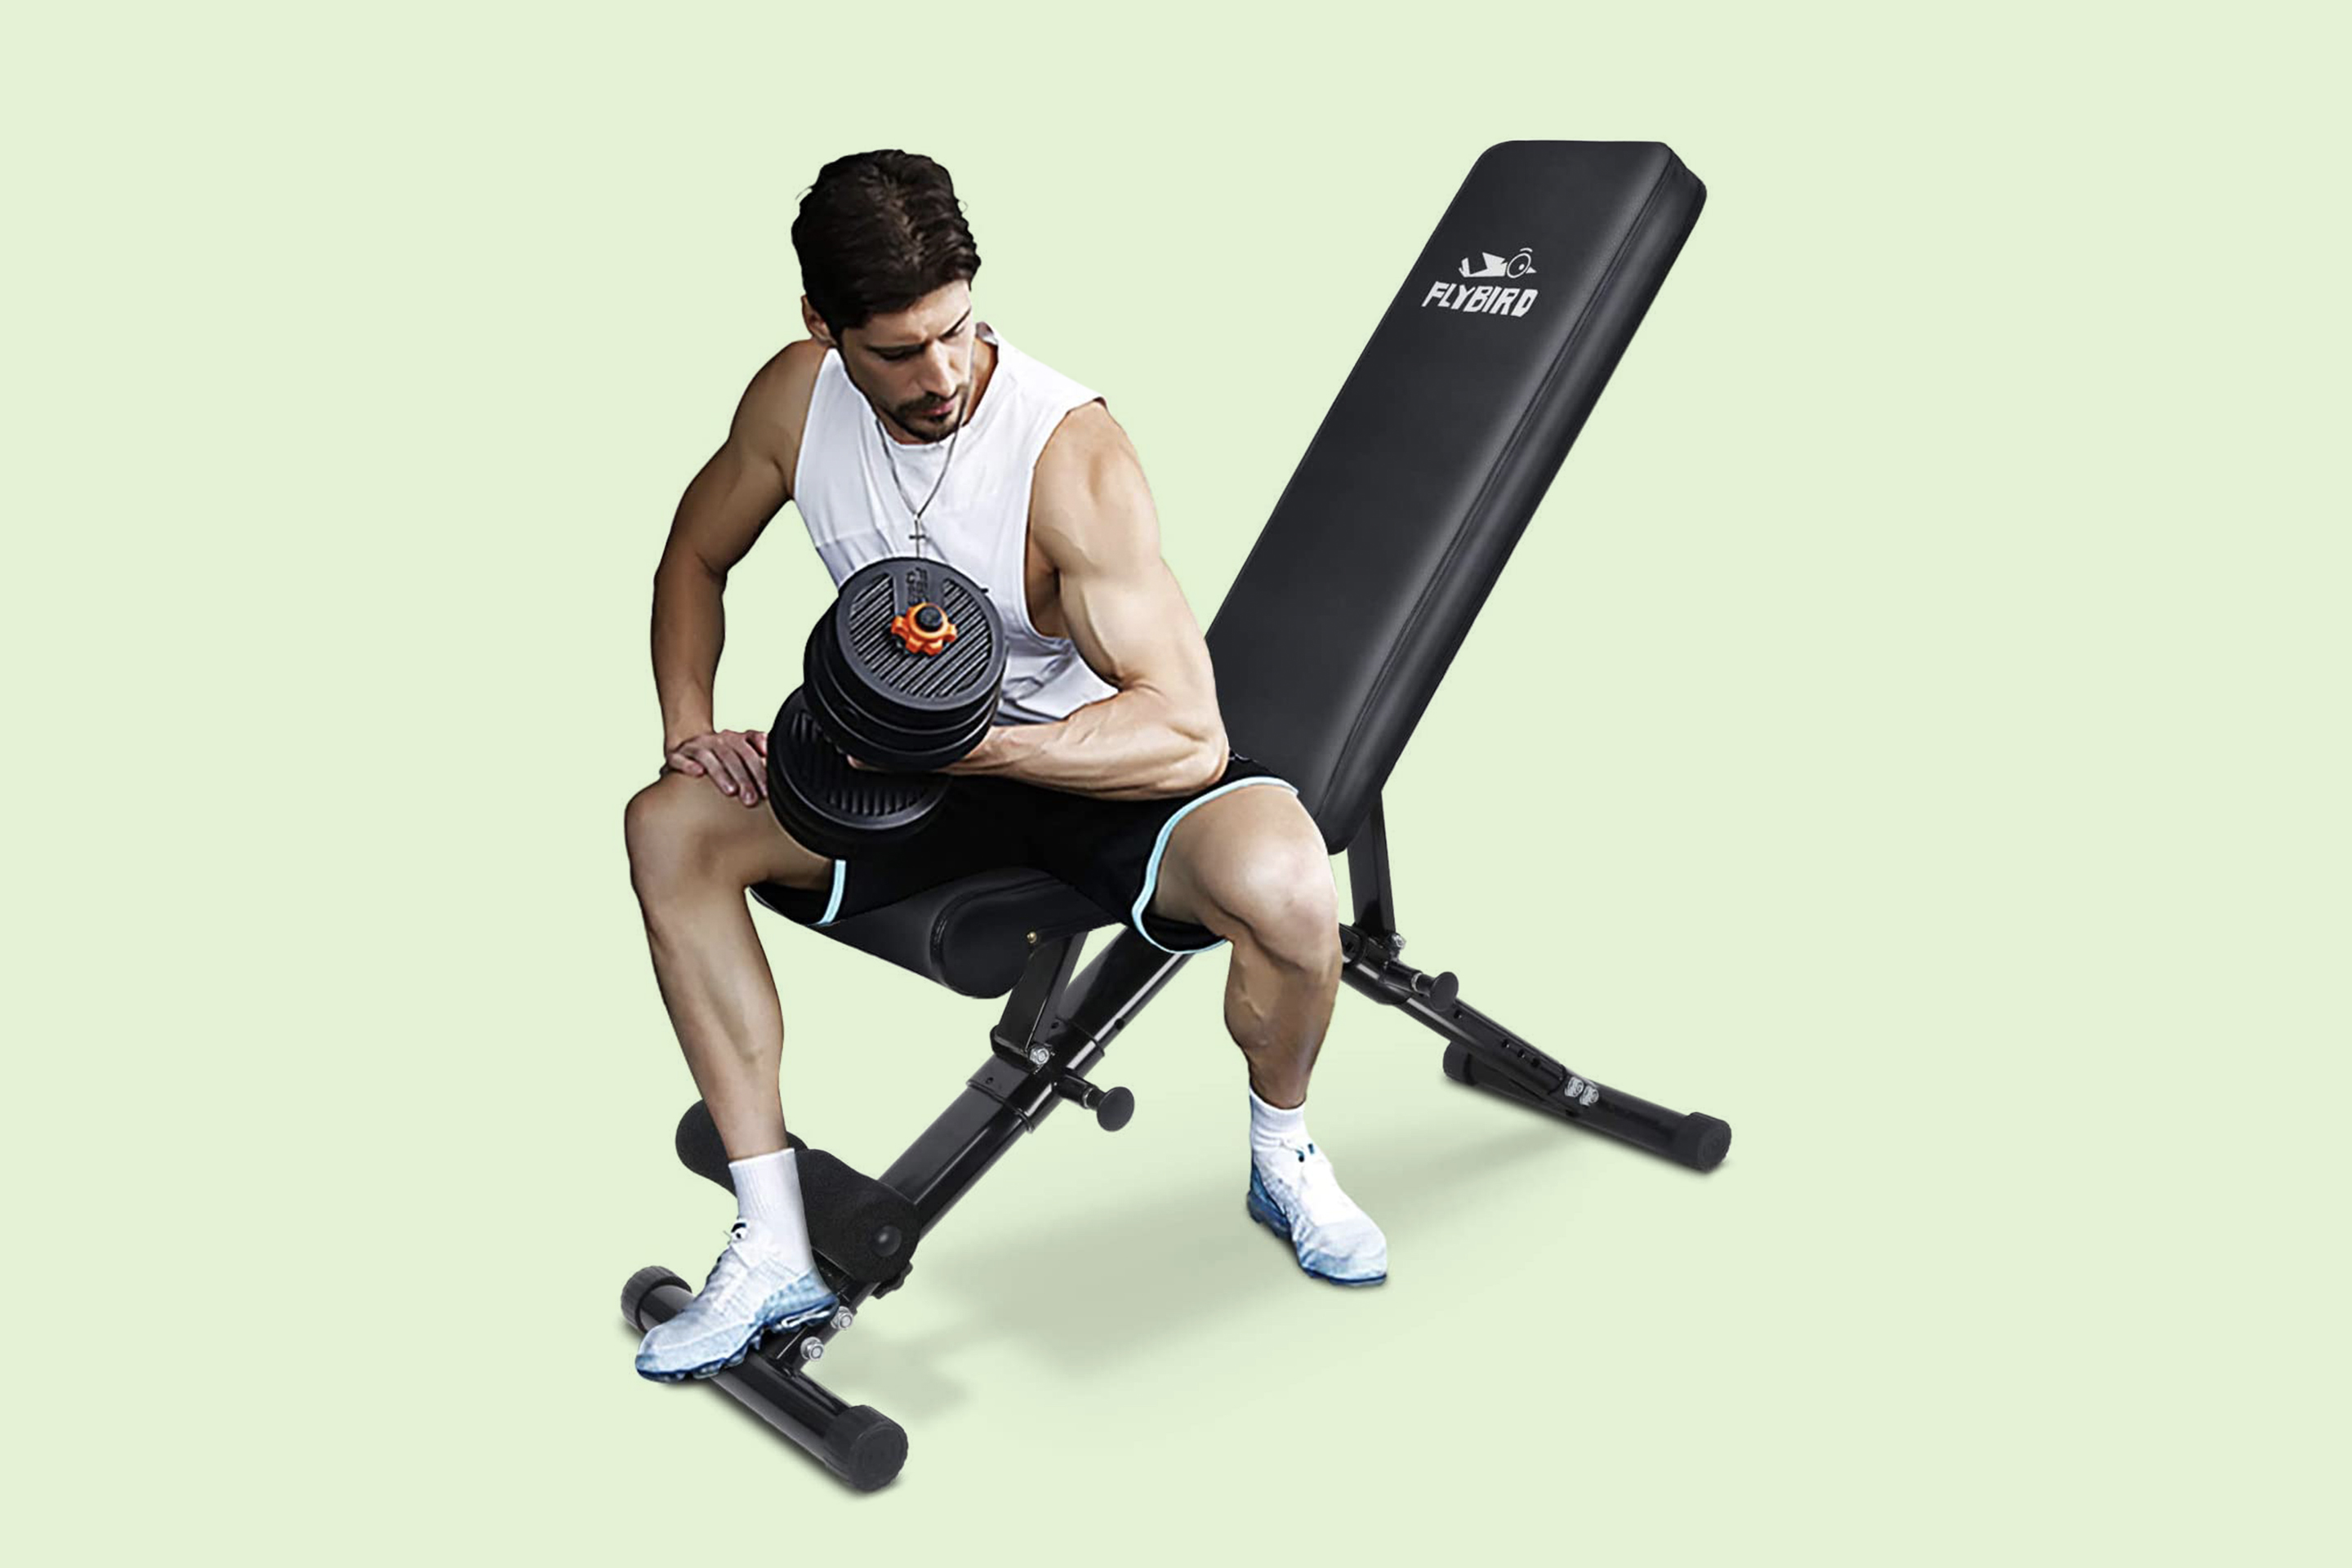 Flybird Adjustable Workout Bench FB149